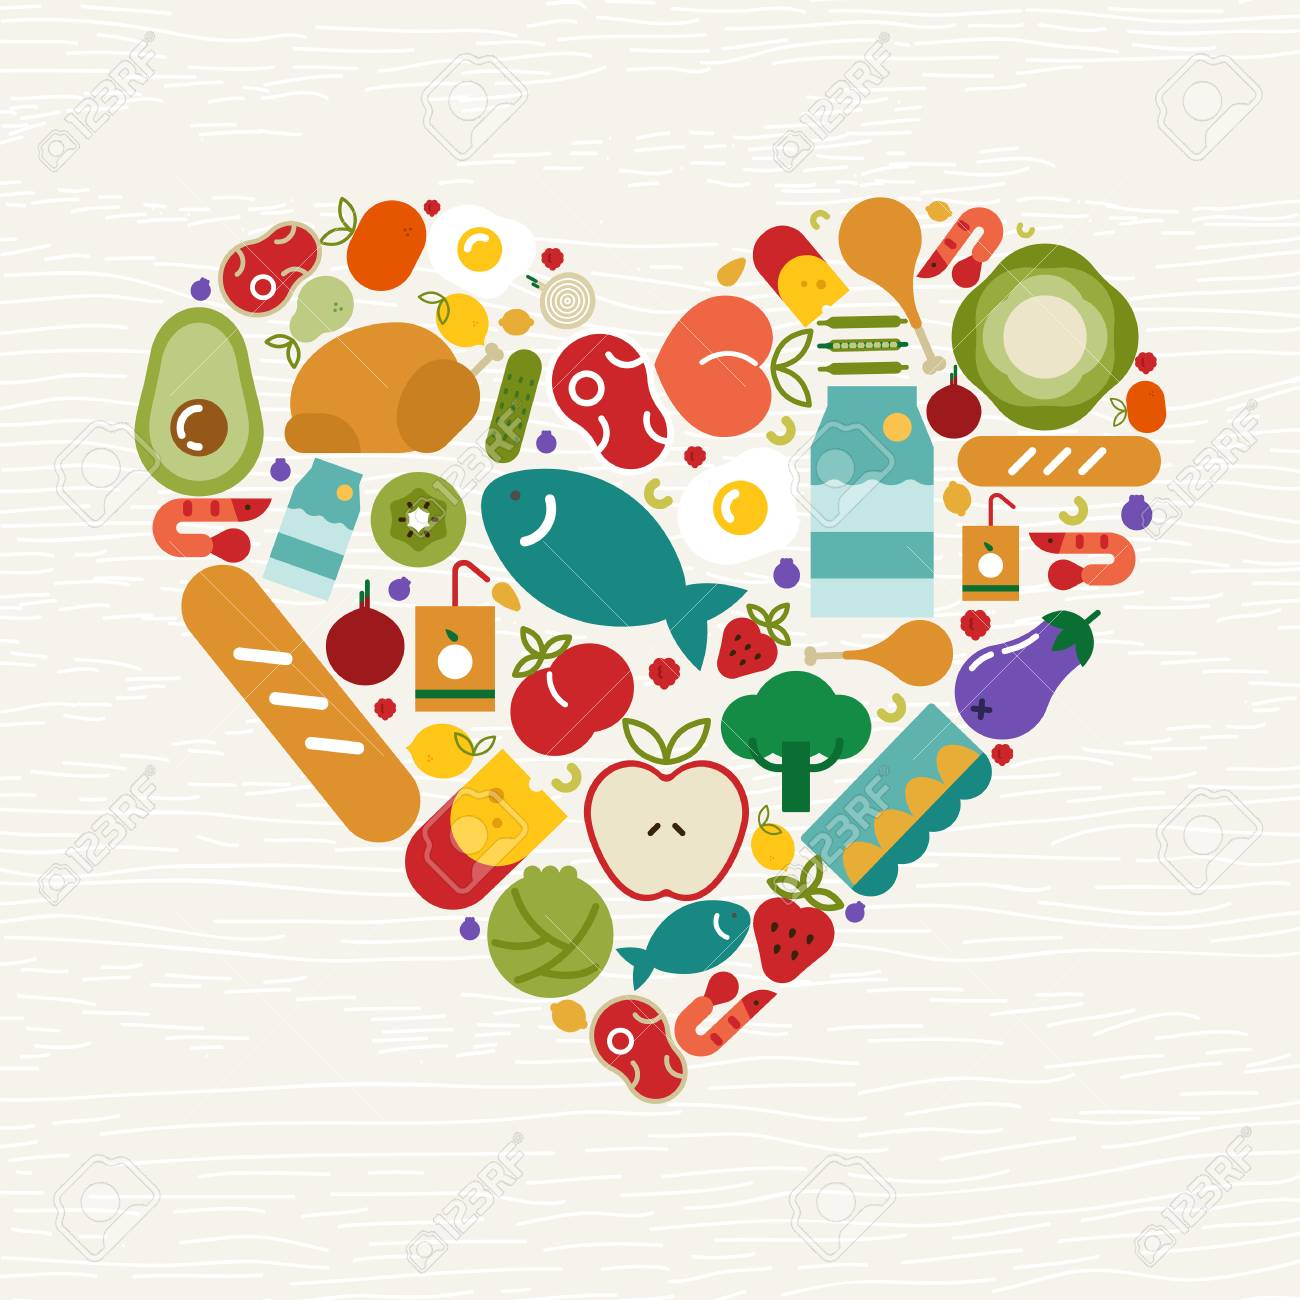 Food icons making heart shape for healthy eating or balanced nutrition concept. Includes fruit, vegetables, meat, bread and dairy. - 113542919